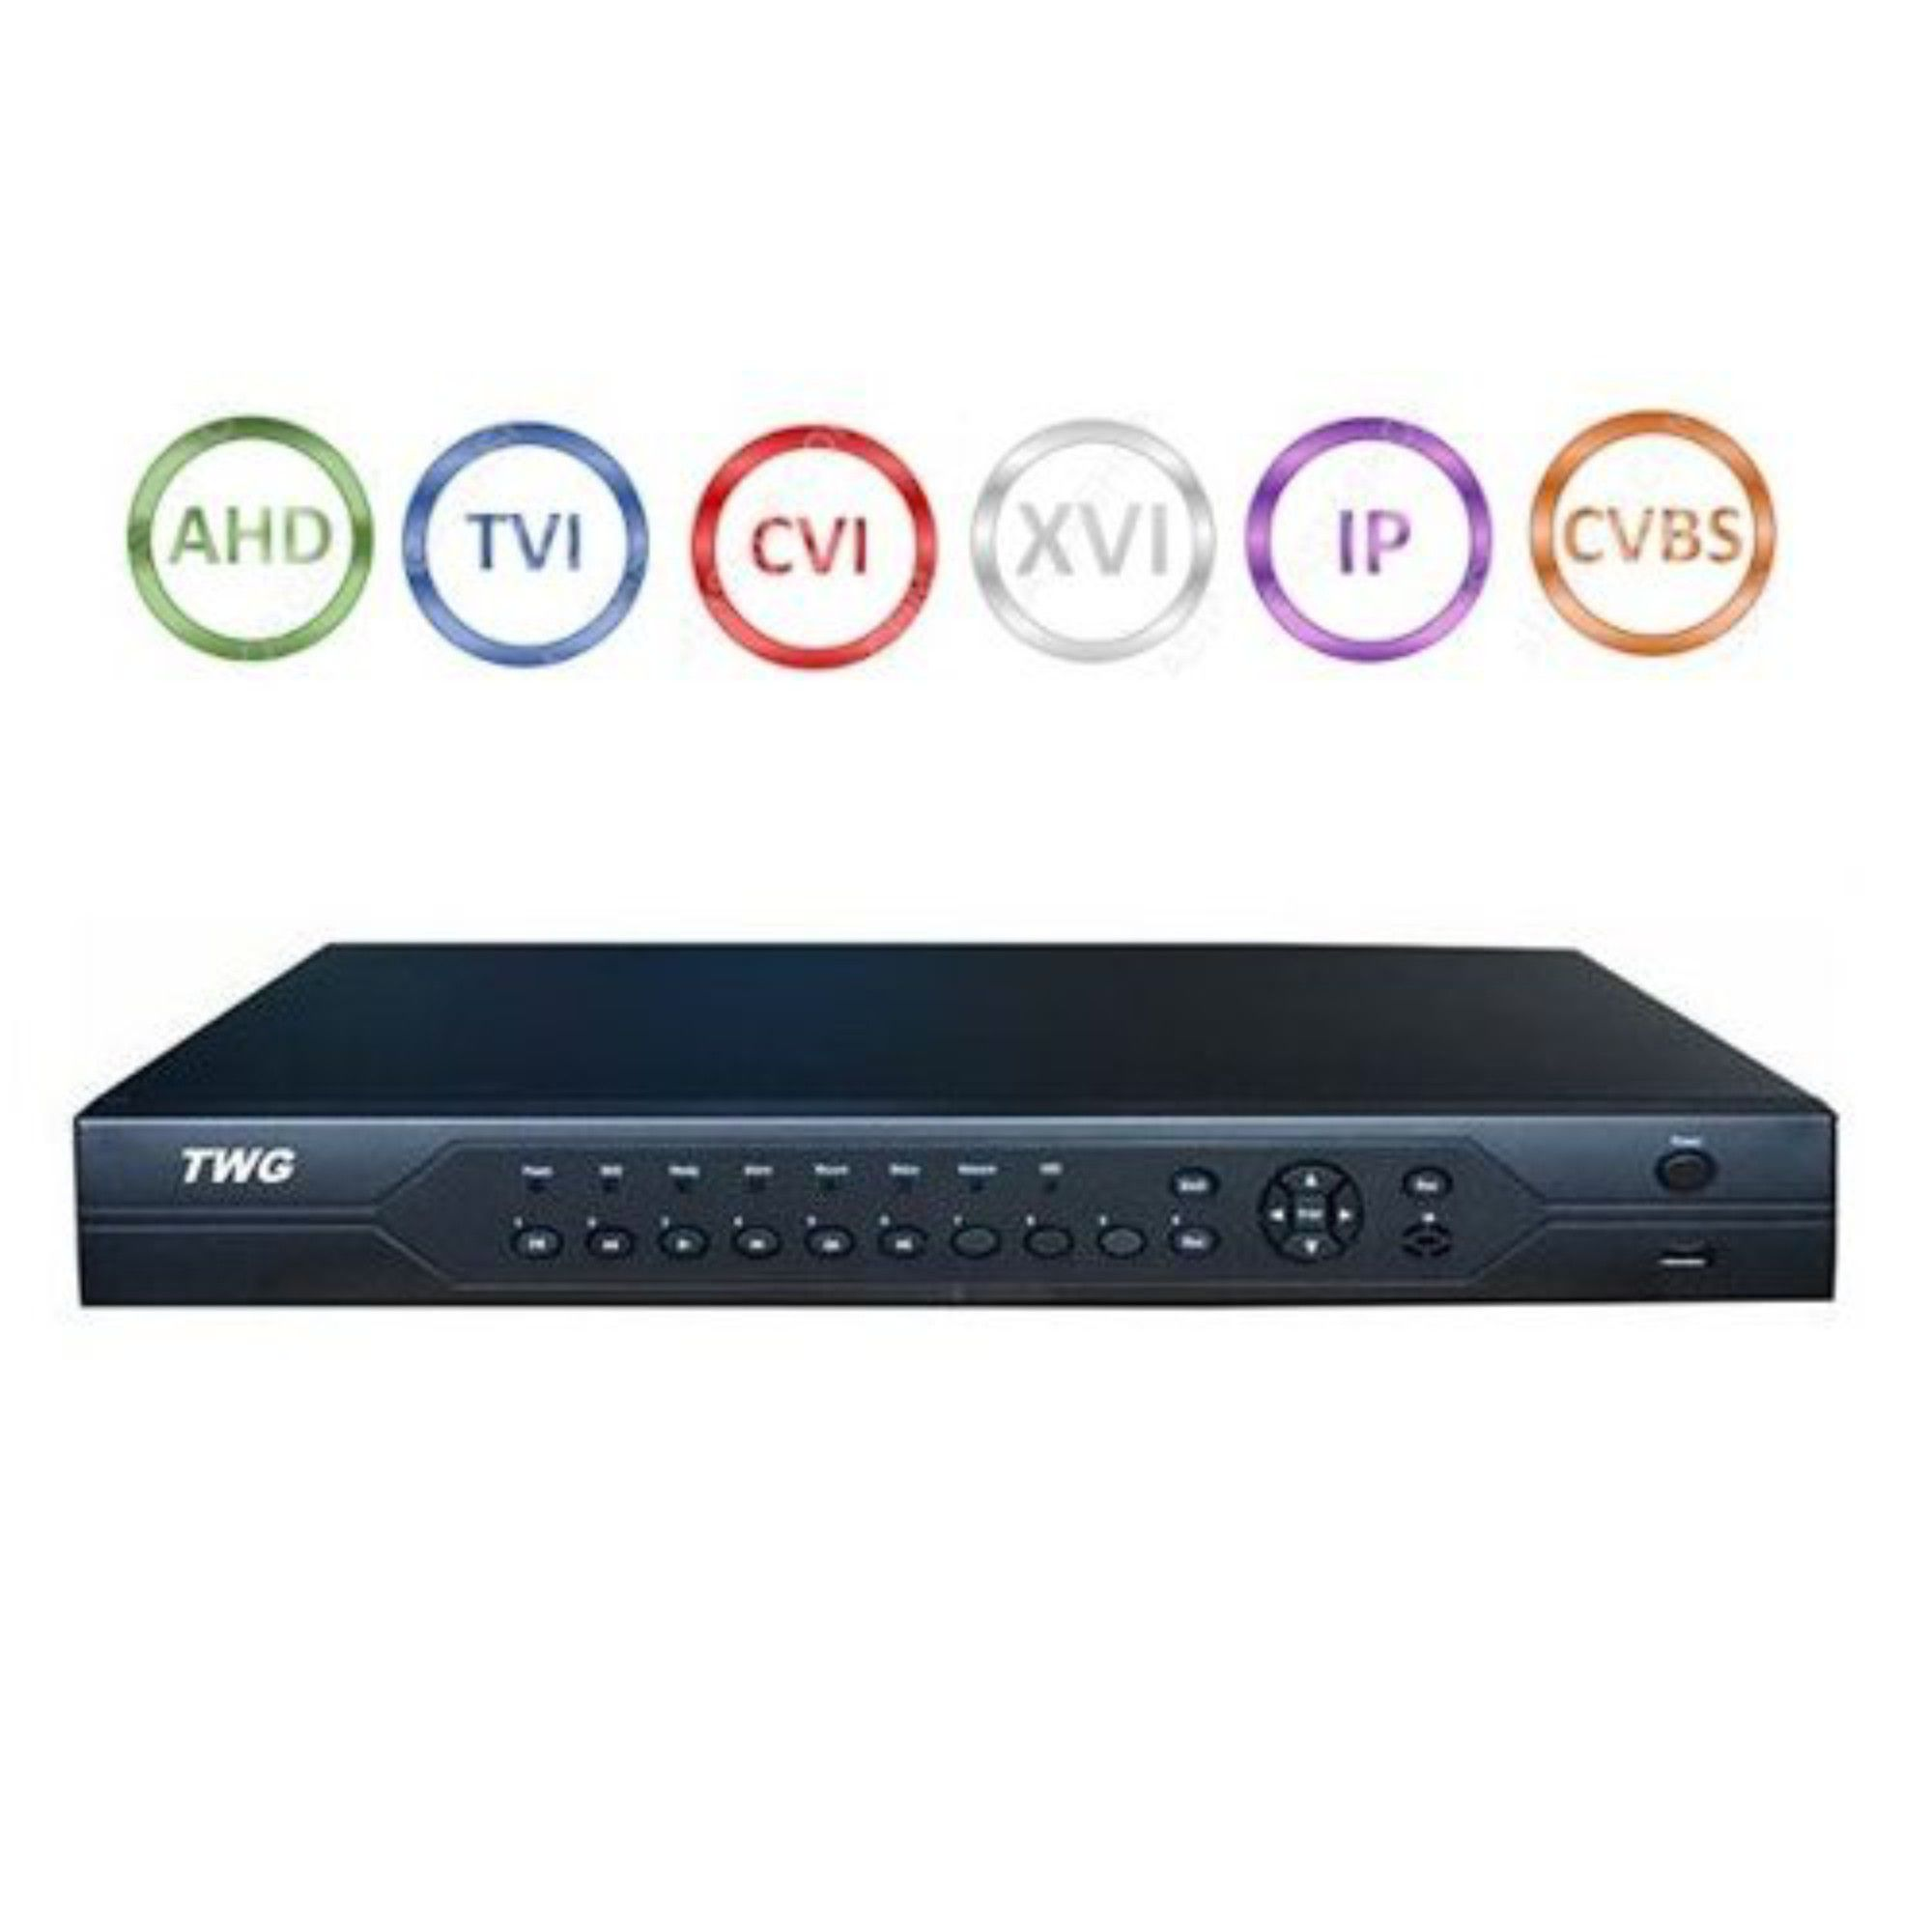 DVR Stand Alone 32 Canais TWG Full HD 5 em 1